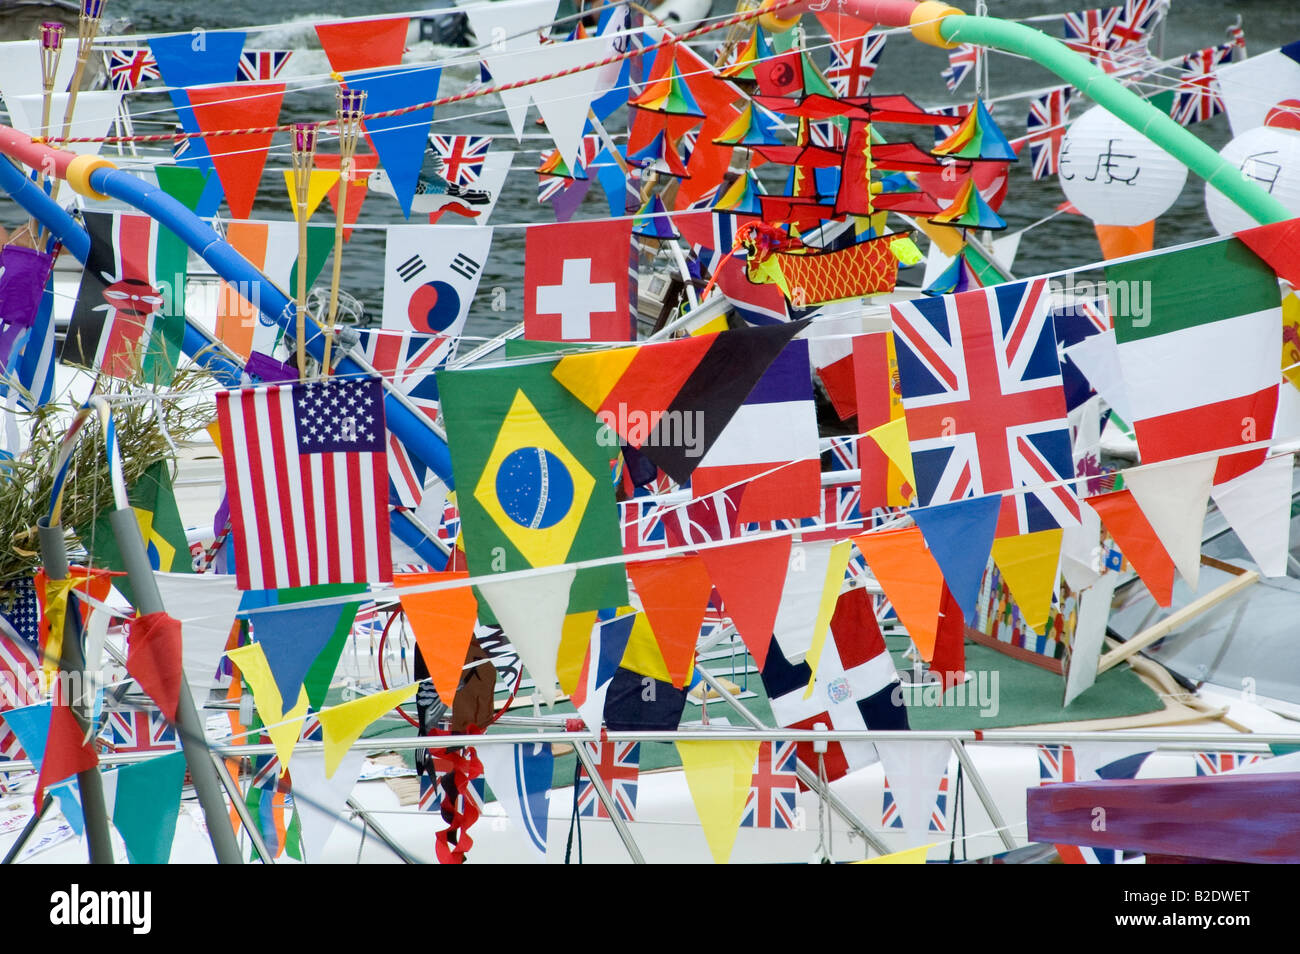 Flags and Pennants on boats at River Festival in Maidstone, Kent UK July 2008 - Stock Image